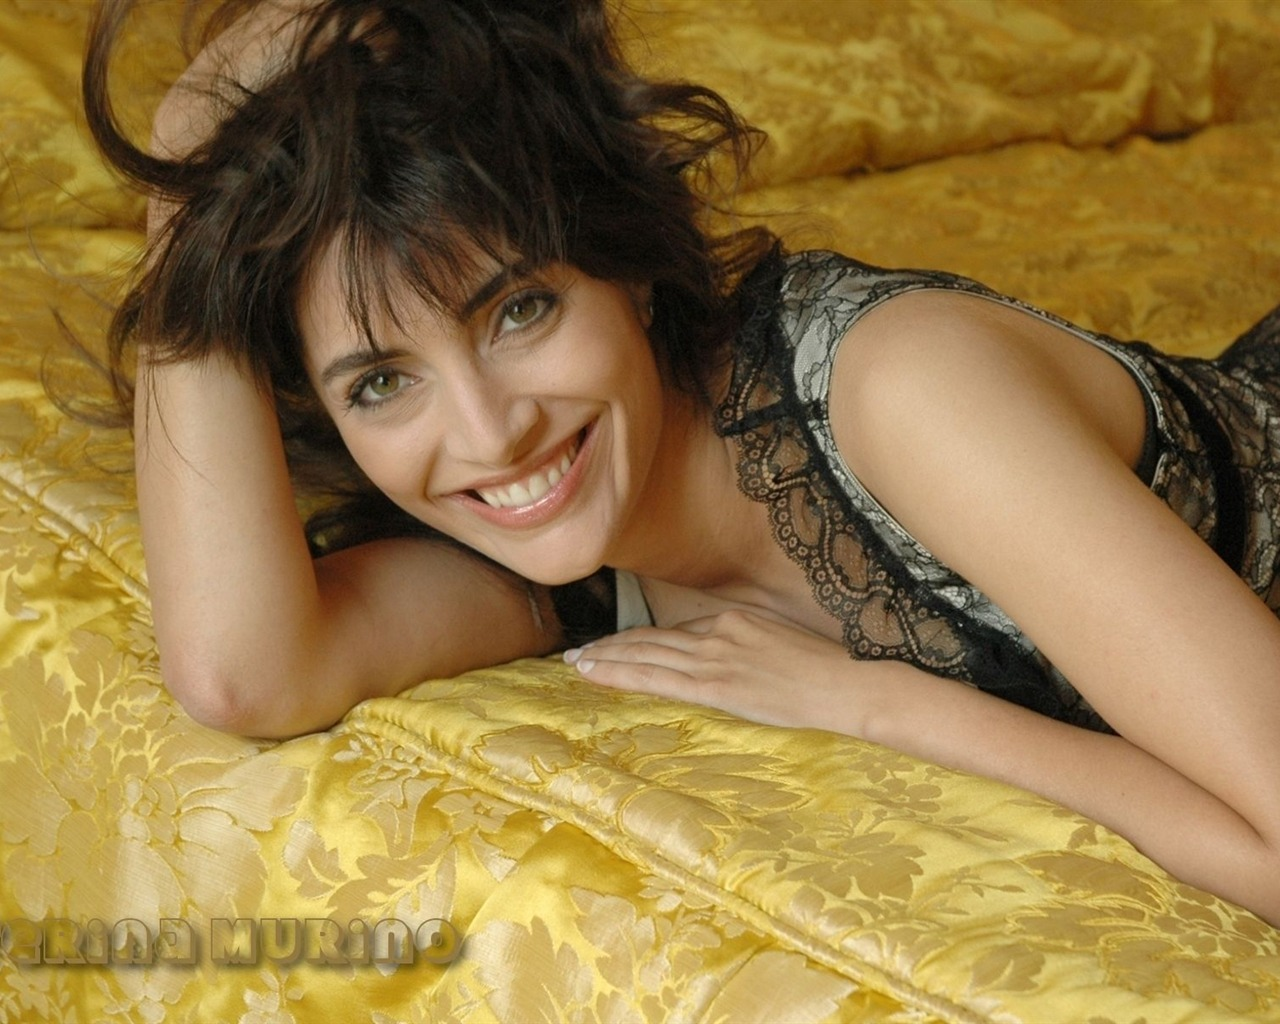 Caterina Murino #007 - 1280x1024 Wallpapers Pictures Photos Images